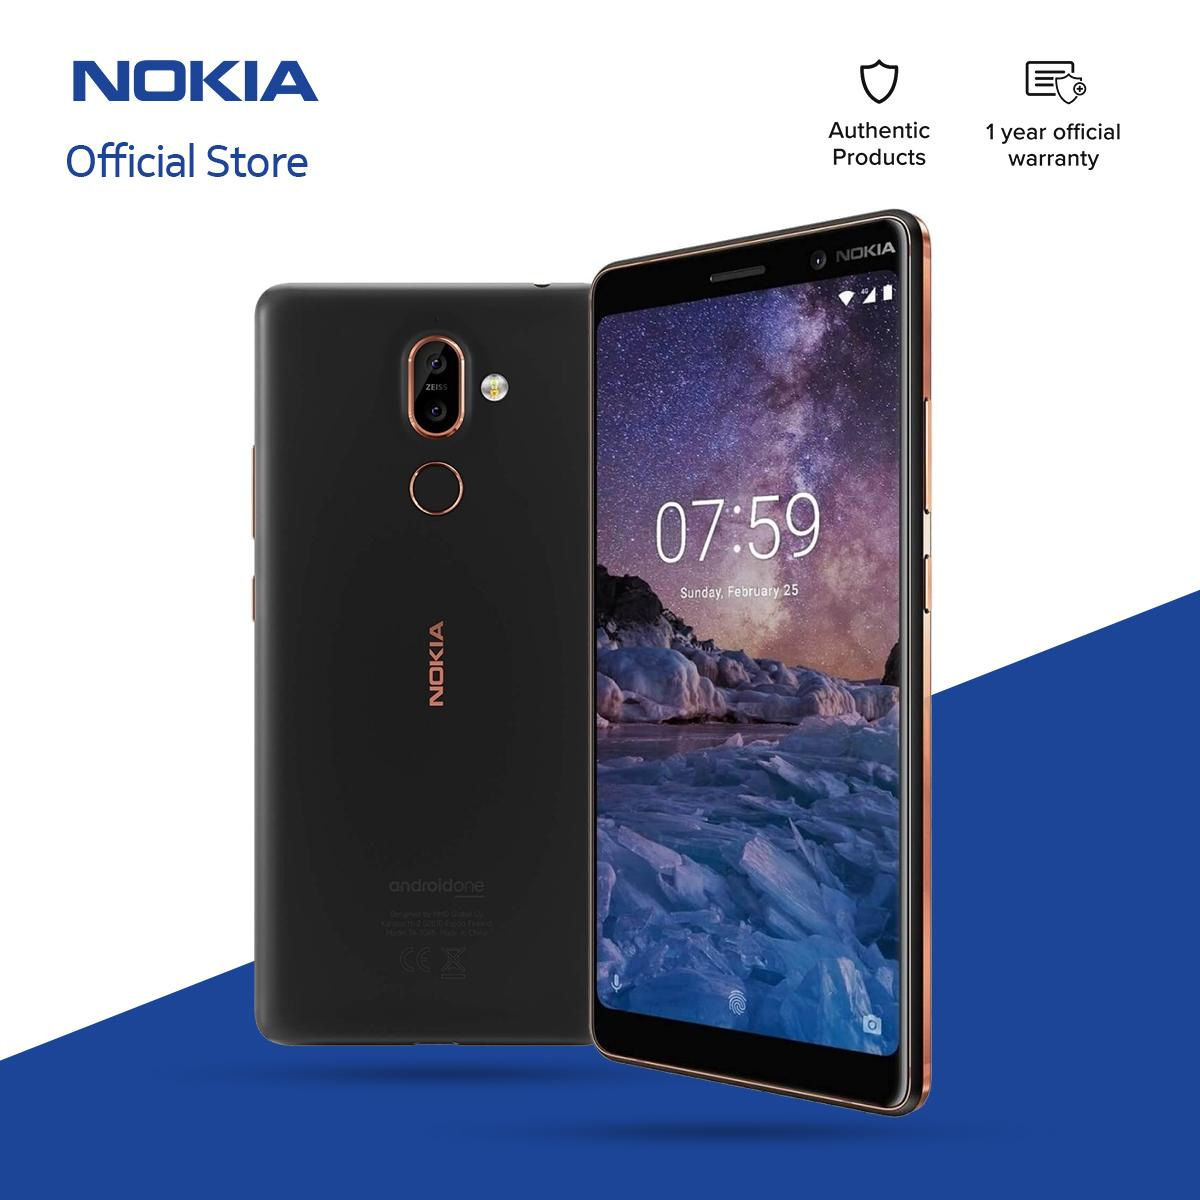 1adabc659c3 Nokia Phone for sale - Up to 60% off